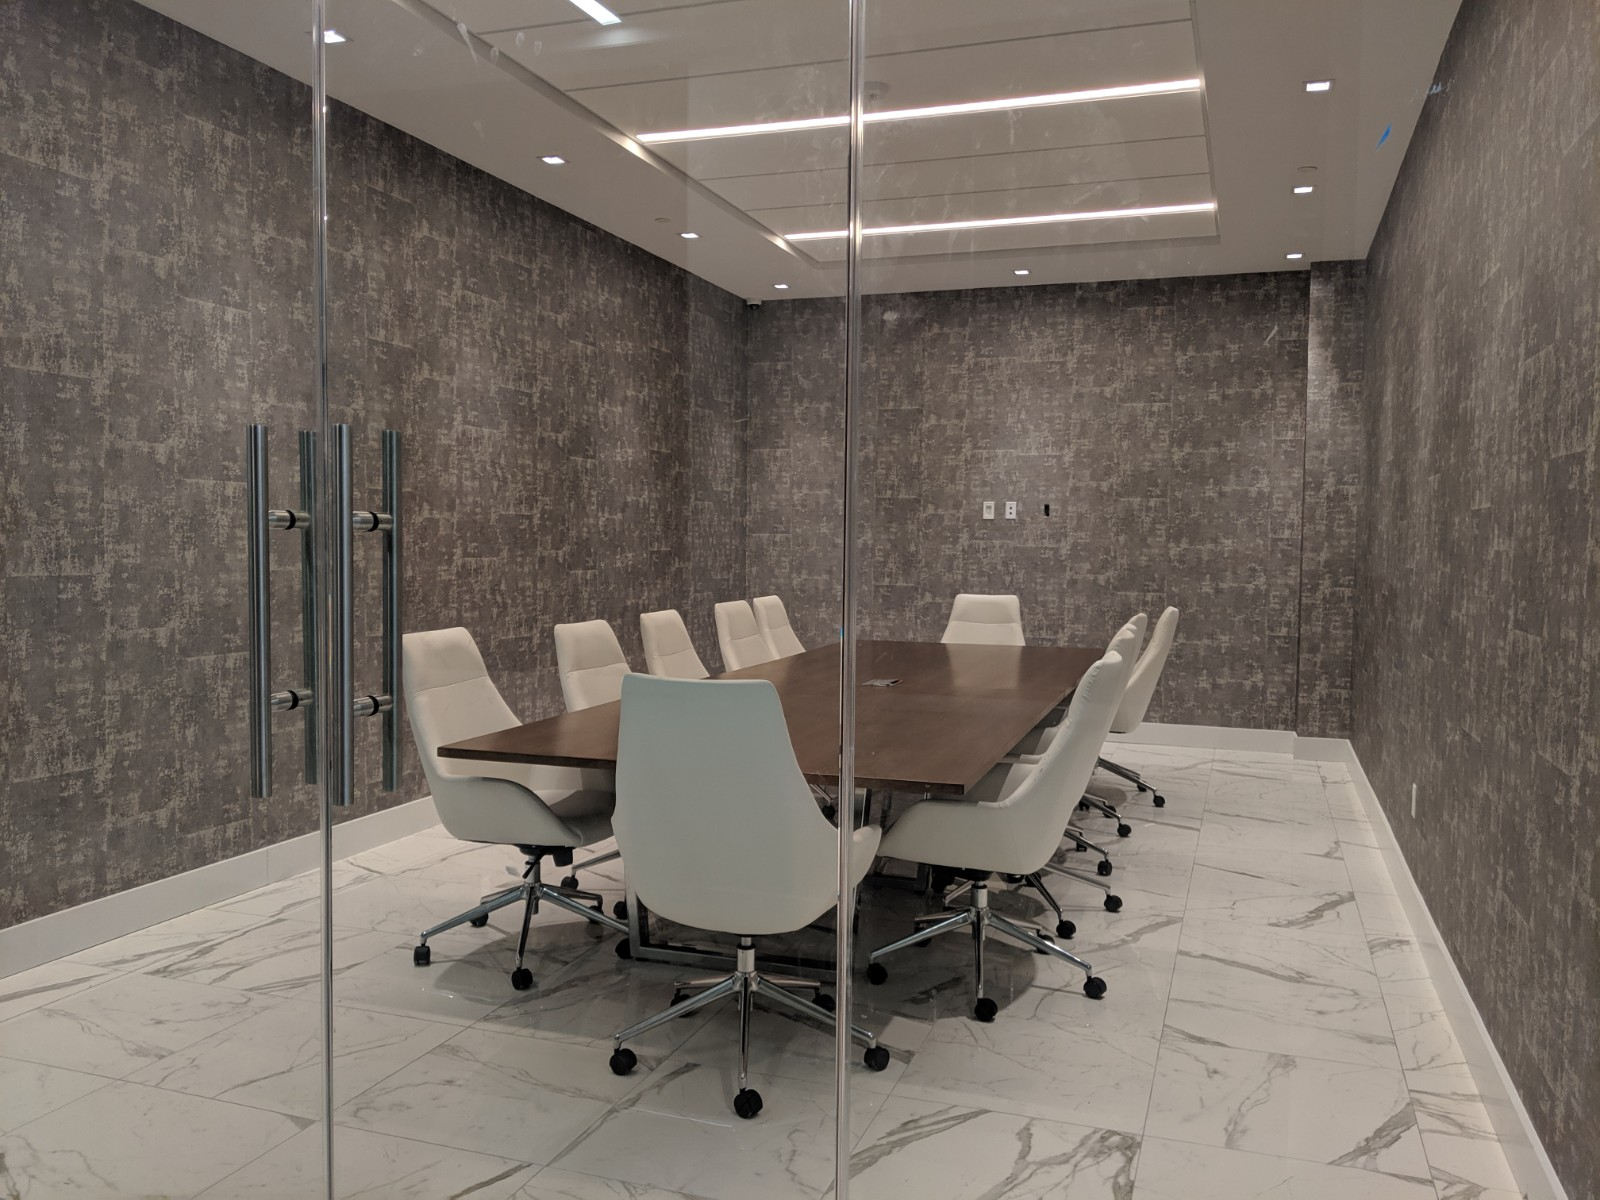 4th Floor Conference Room